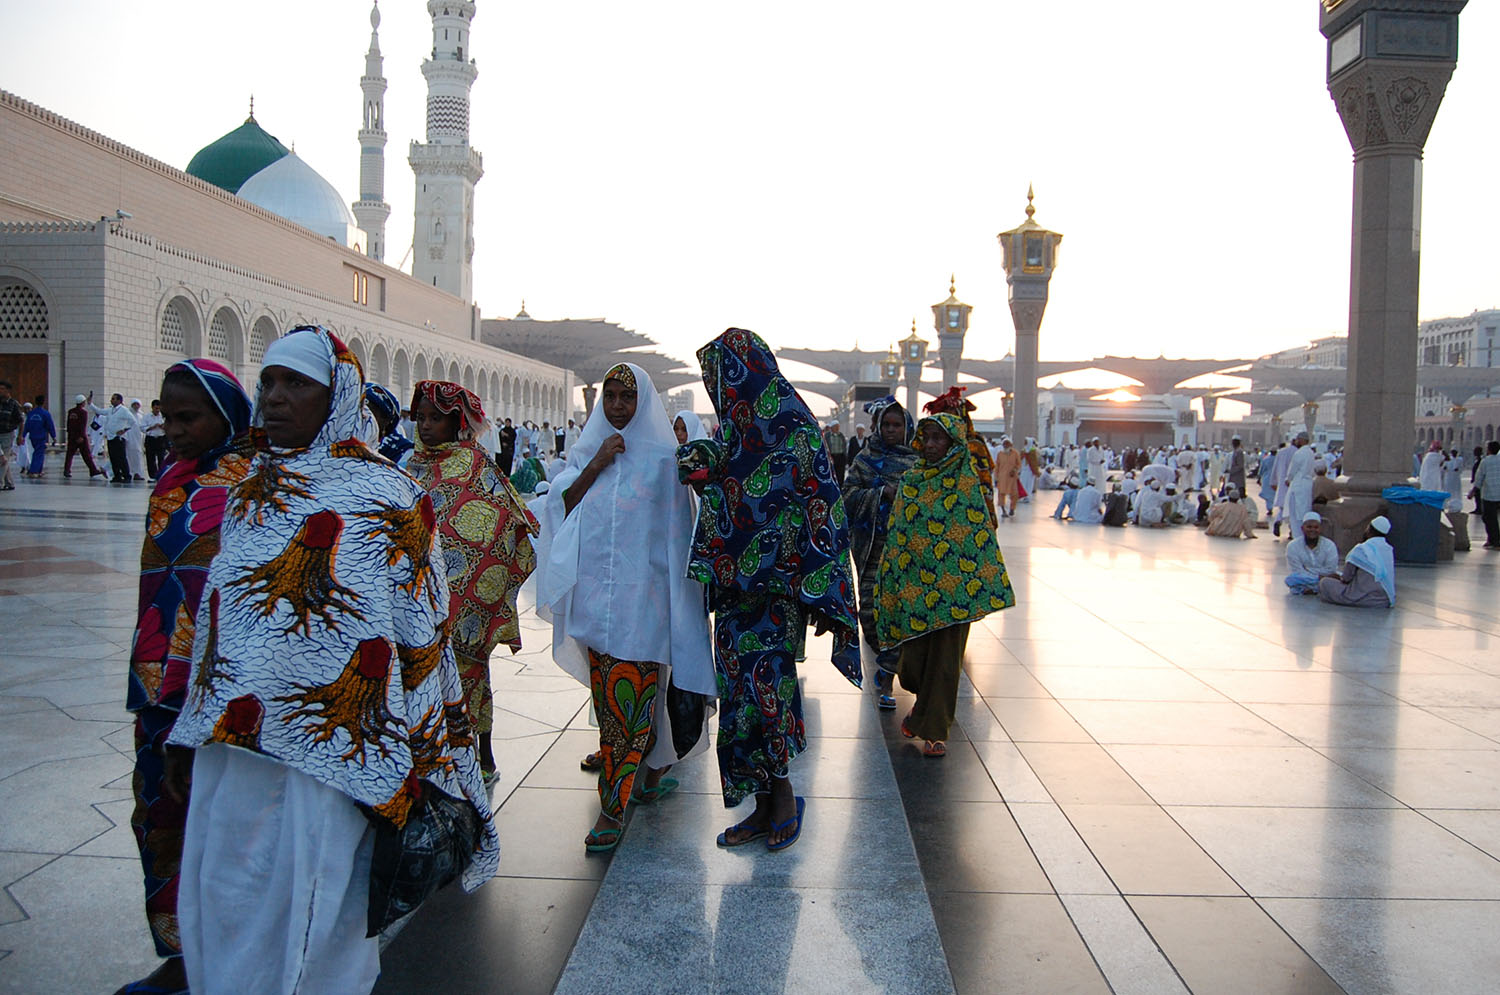 Colorfully dressed African women on the pilgrimage with the Prophet's grave in the background